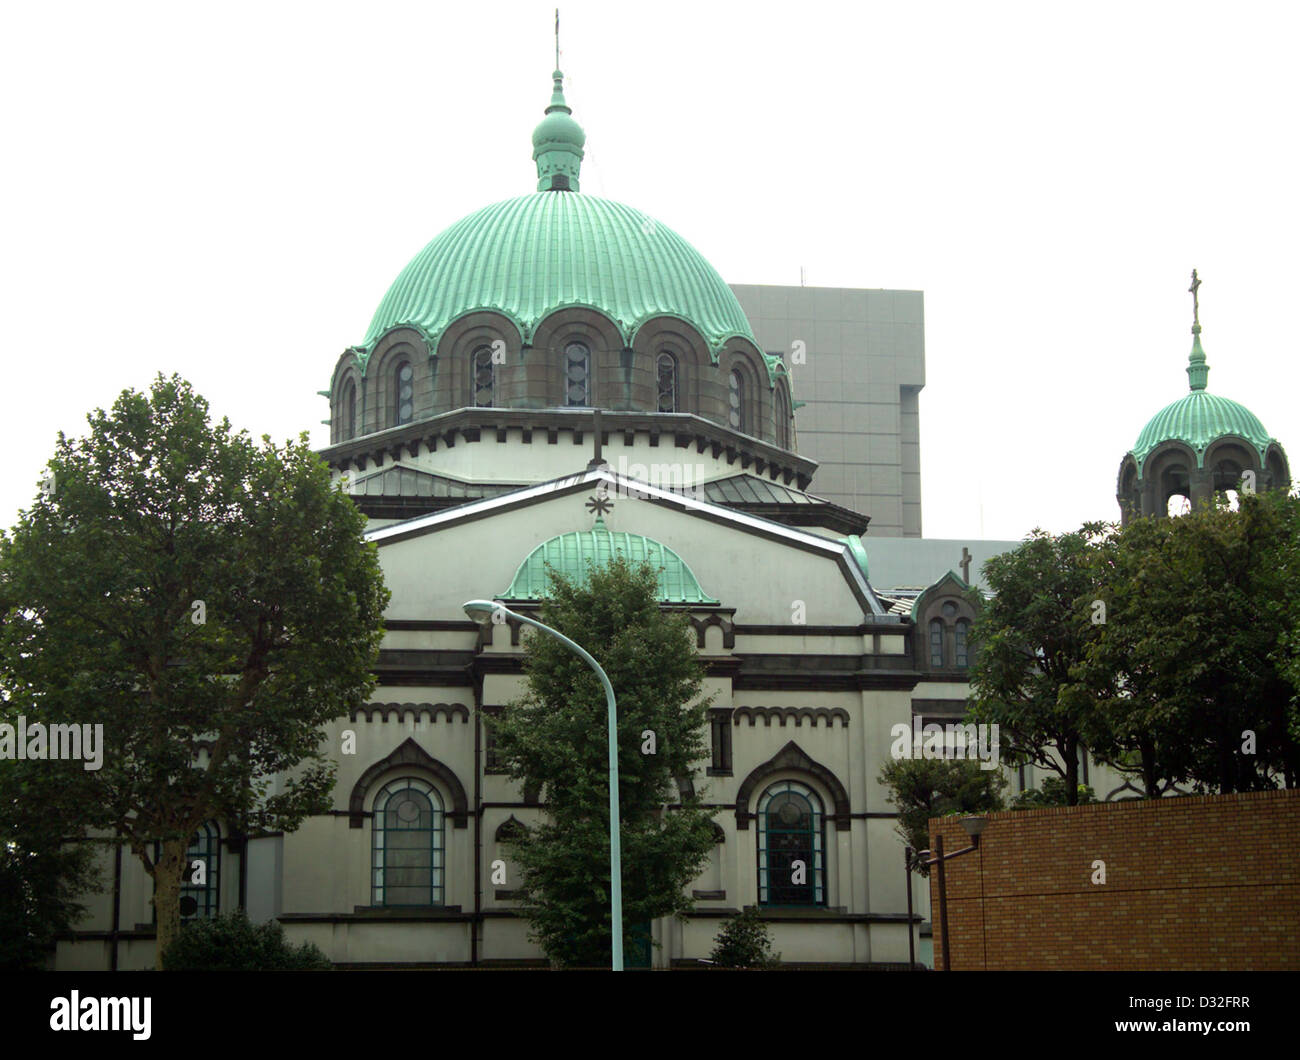 Holy Resurrection Cathedral 東京復活大聖堂, known as Nikorai-do ニコライ堂 - Stock Image